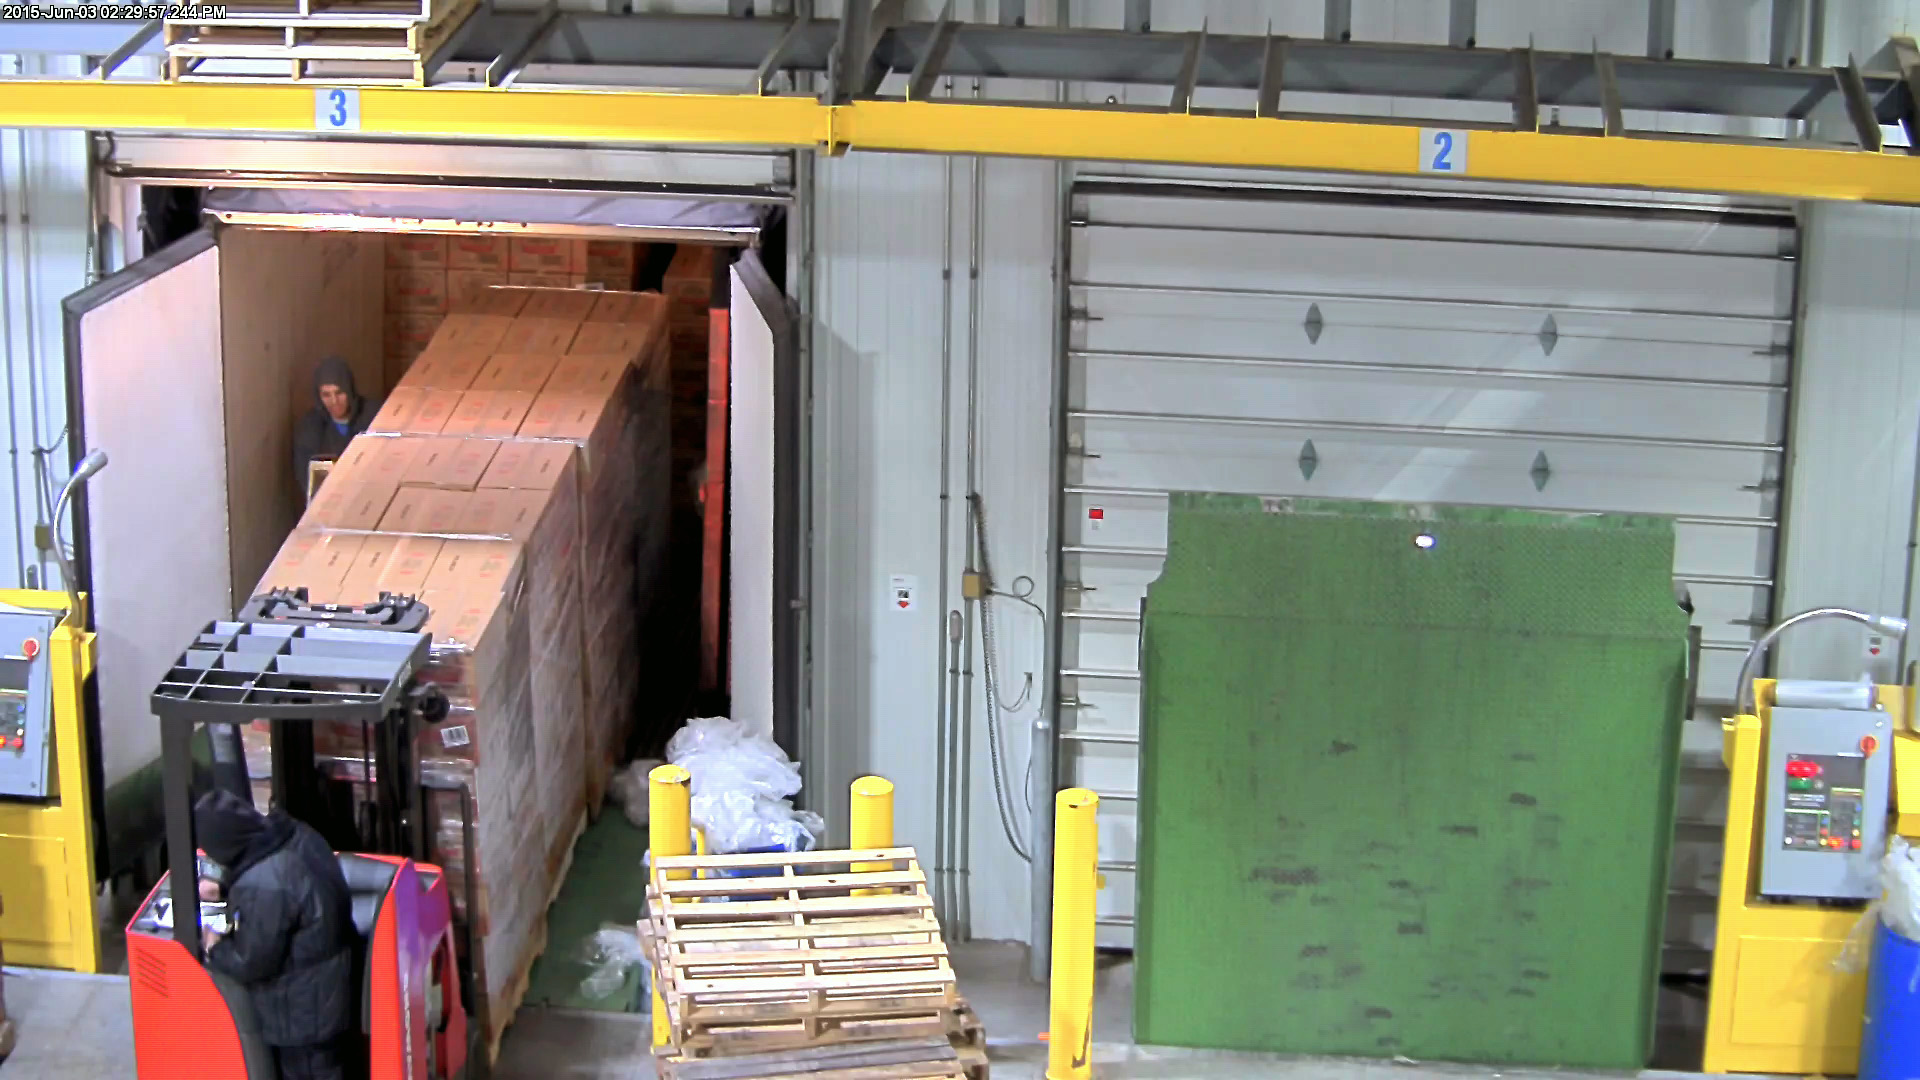 Loading-Dock-Inside-the-Trailer